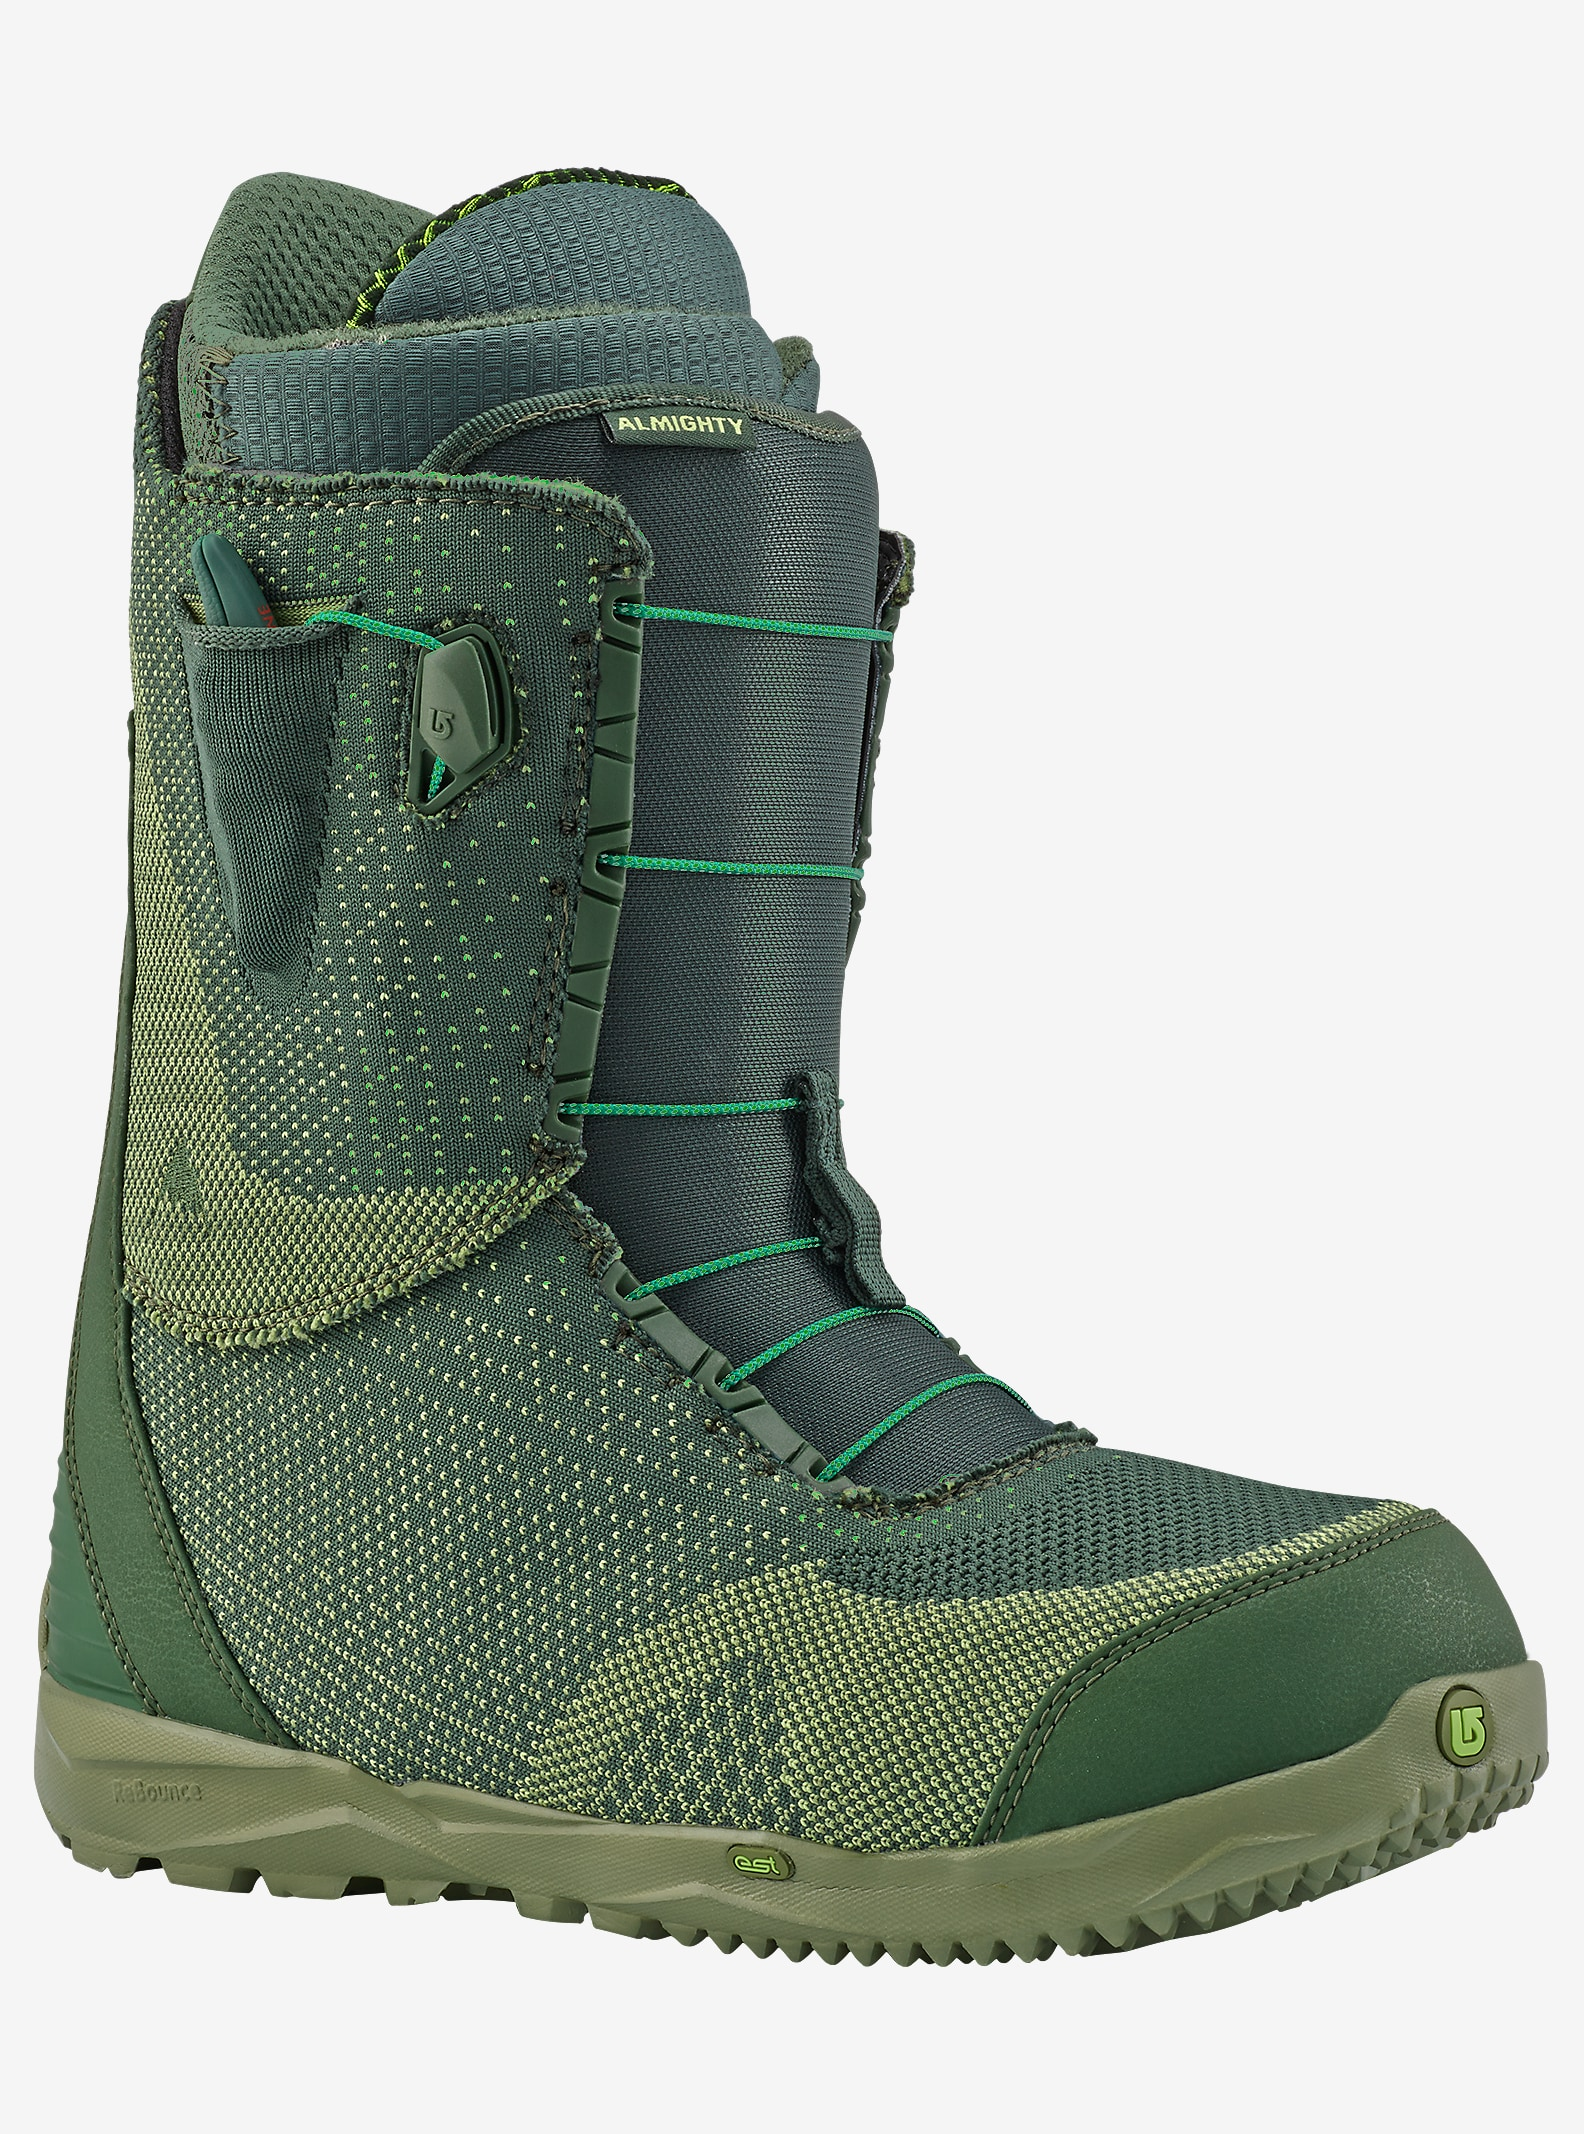 Burton Almighty Snowboard Boot shown in Multiweave